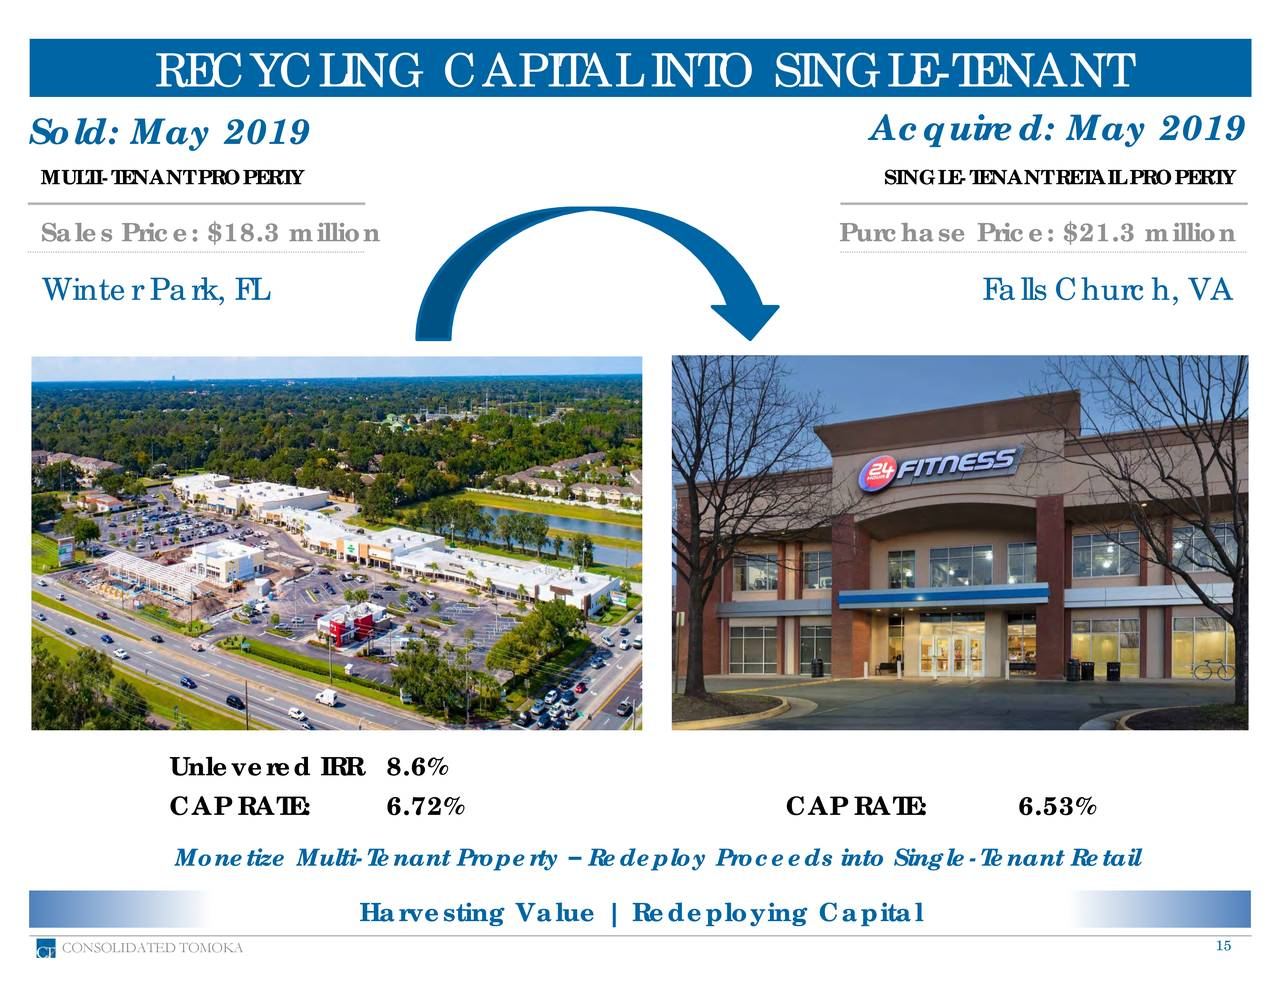 Sold: May 2019 Acquired: May 2019 MULTI-TENANT PROPERTY SINGLE-TENANT RETAIL PROPERTY Sales Price: $18.3 million Purchase Price: $21.3 million Winter Park, FL Falls Church, VA Unlevered IRR 8.6% CAP RATE: 6.72% CAP RATE: 6.53% Monetize Multi-Tenant Property – Redeploy Proceeds into Single-Tenant Retail Harvesting Value | Redeploying Capital CONSOLIDATED TOMOKA 15